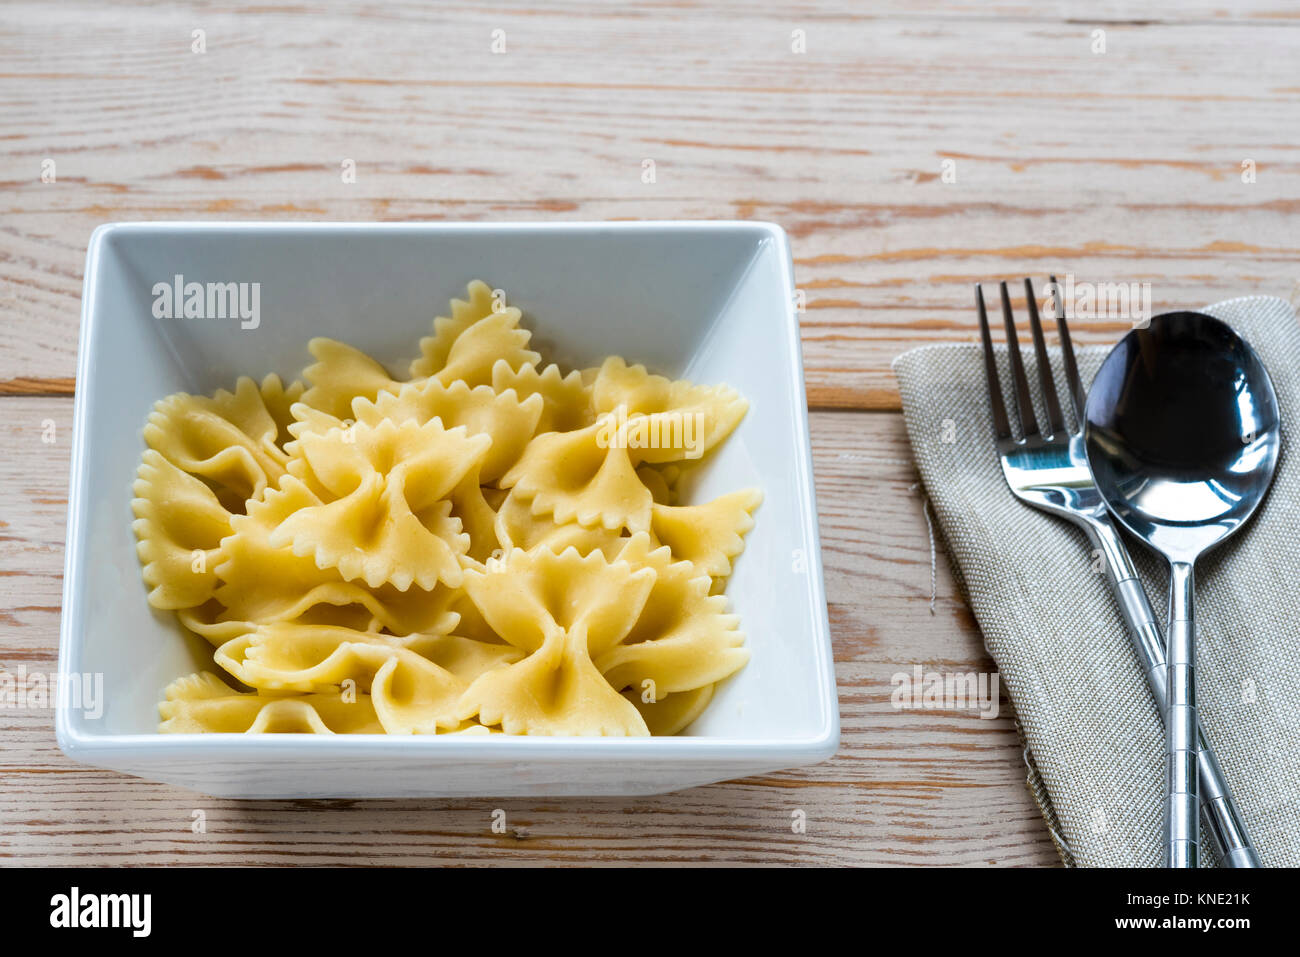 Bowl cooked farfalle pasta with fork and spoon and napkin, serviette. - Stock Image